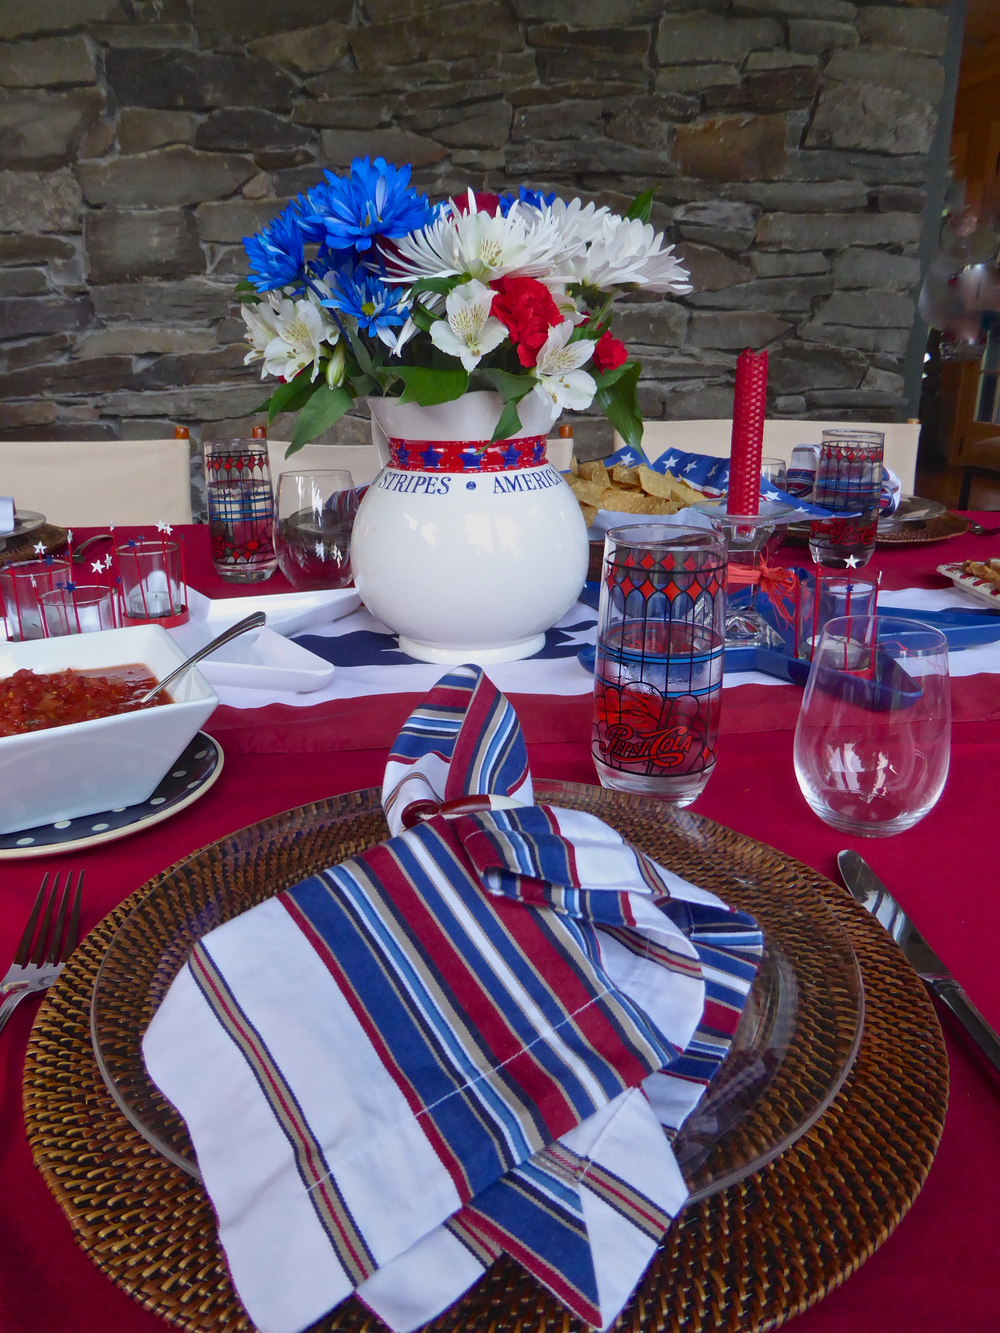 4thJuly_tabletop_Sue_spiritedtable_photo07.jpg